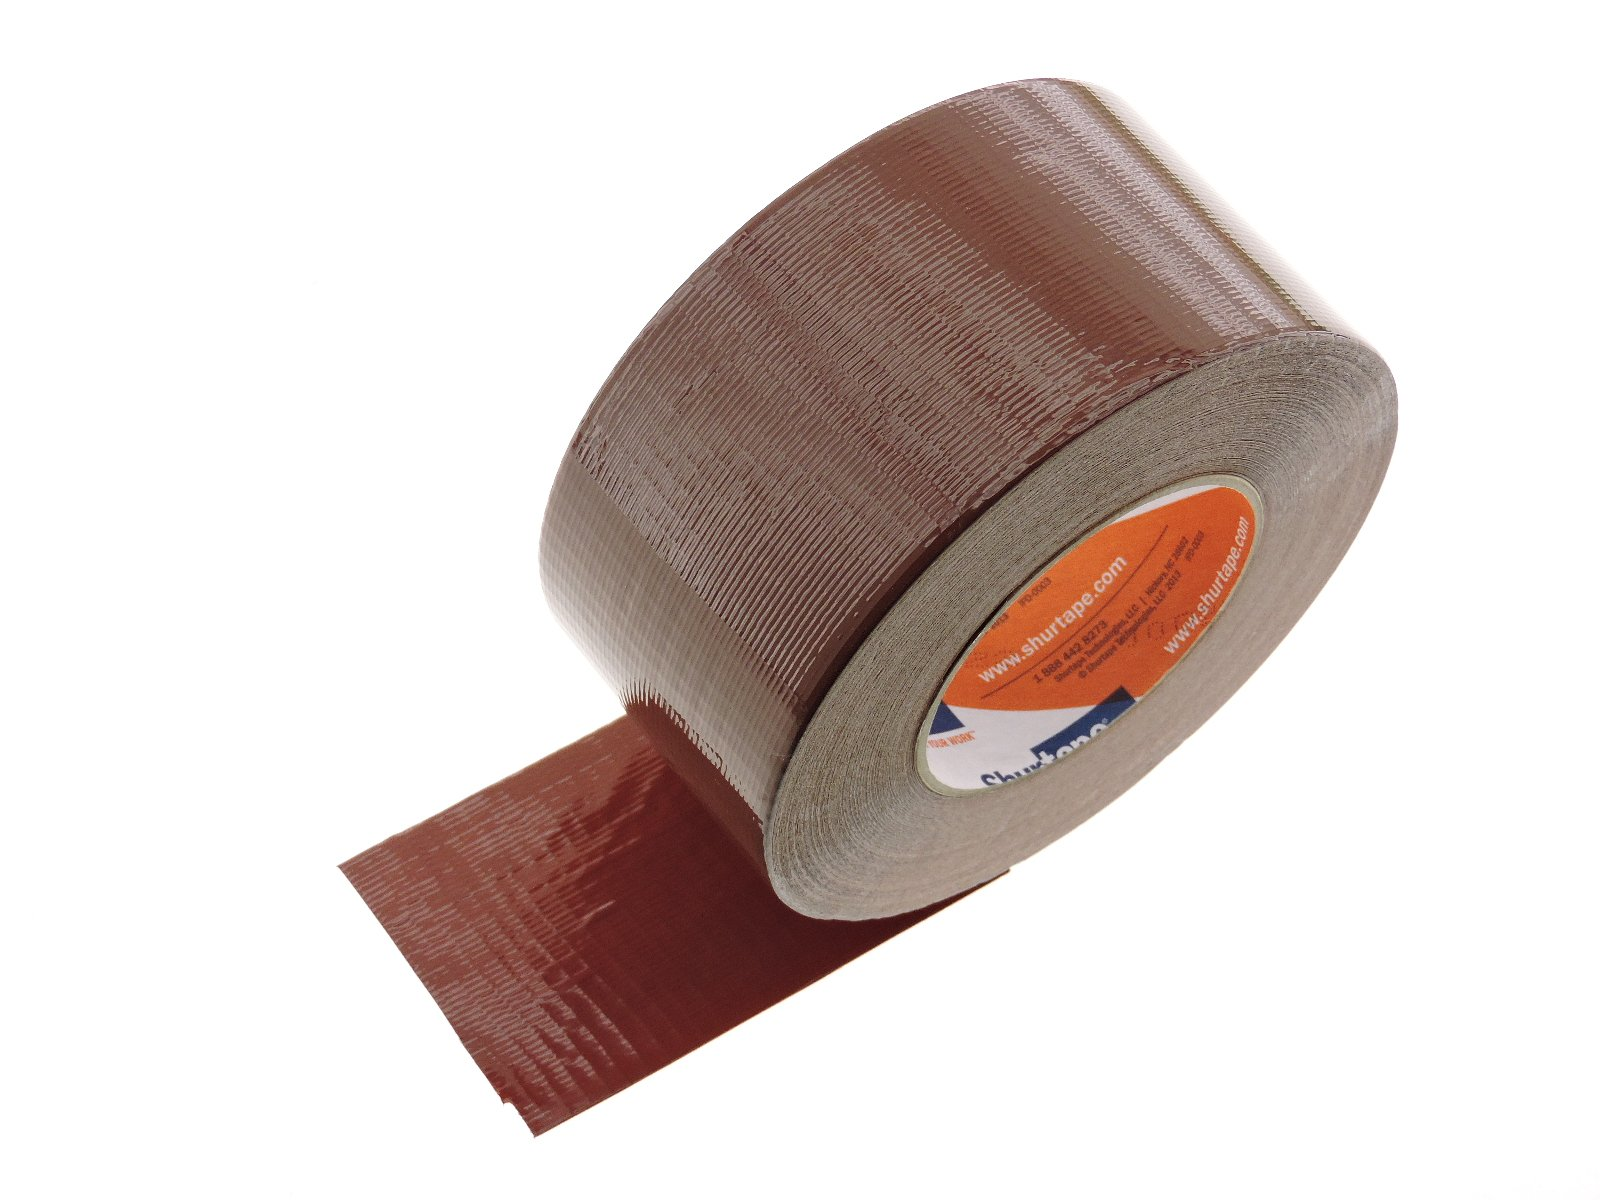 Shurtape 3'' in Brown Duct Tape PC-600 Heavy 9 mil Cloth Reinforced PE Back Duct Tape Water UV Resistant Hand Tearable 60yd USA Made 50 oz inch adhesion 16% elongation 22 lb in tensile strength